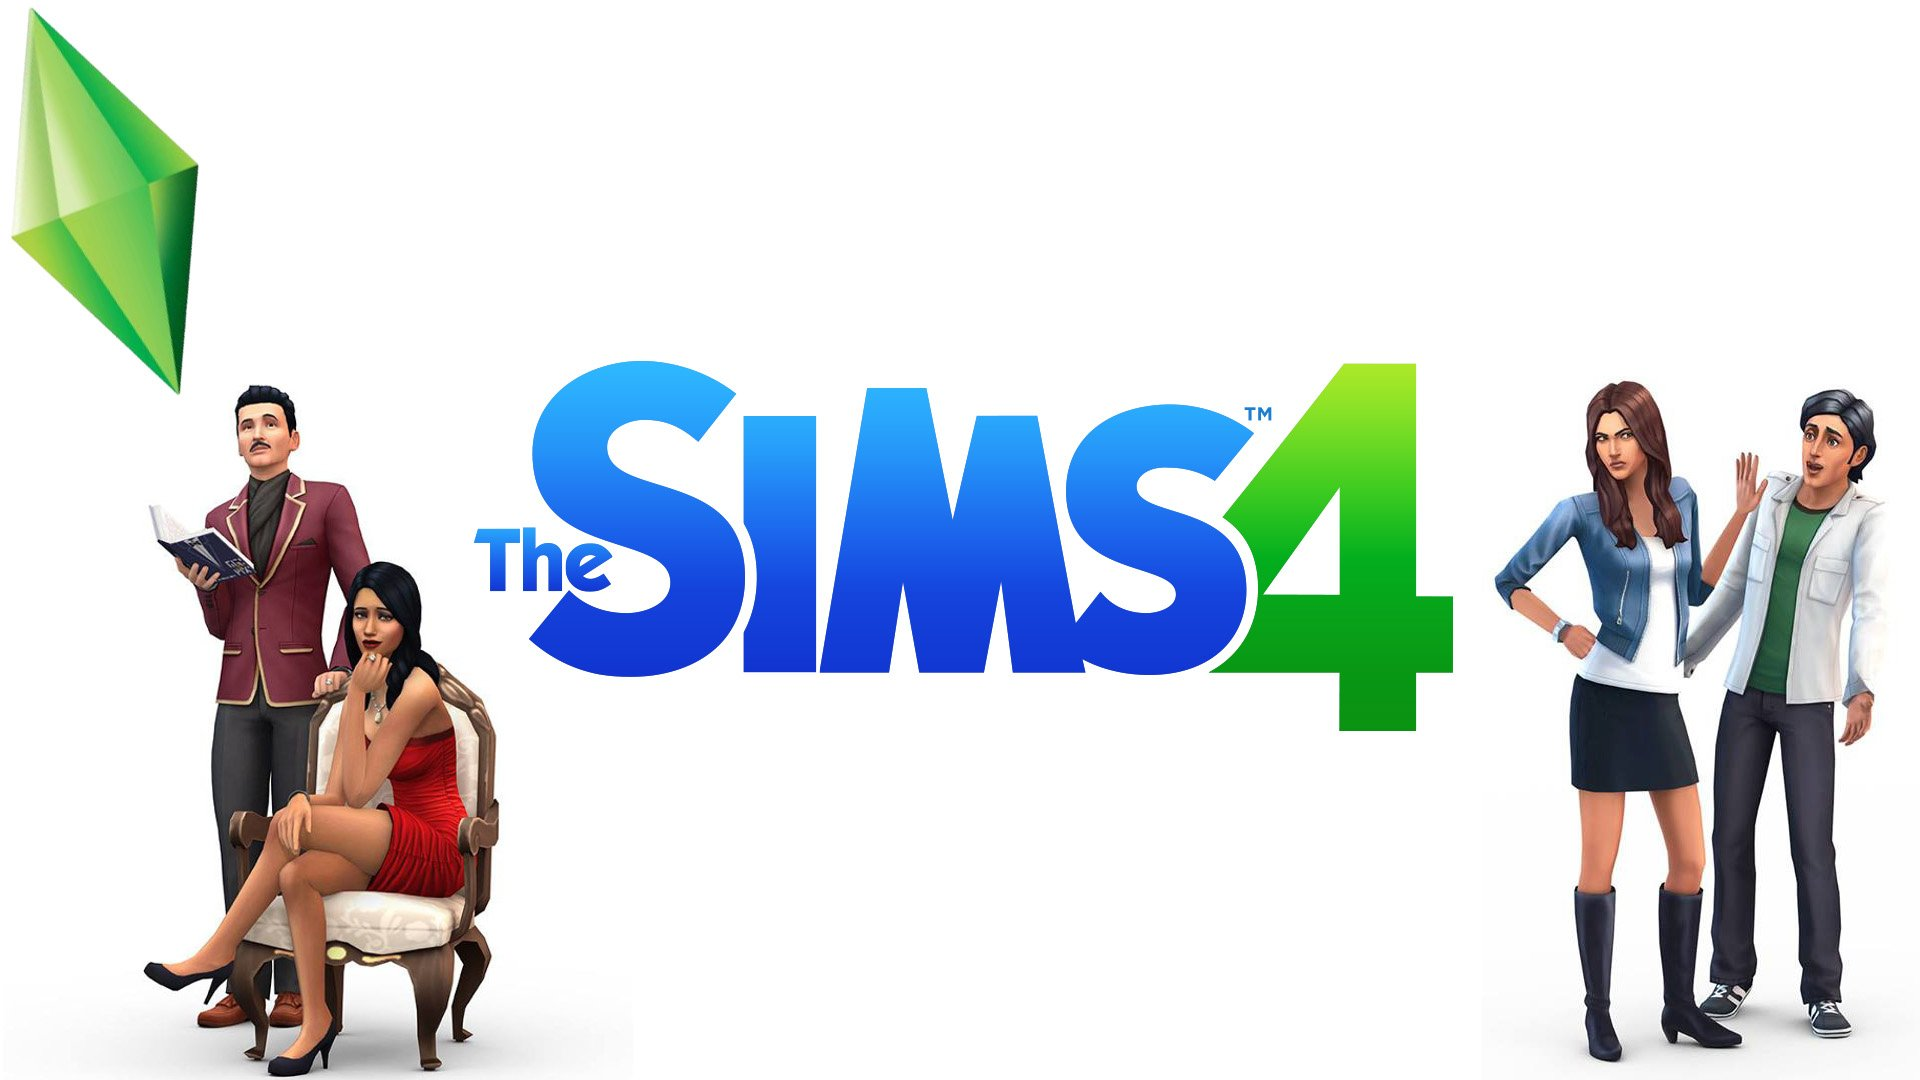 The Sims 4 Hd Wallpaper Background Image 1920x1080 Id 589368